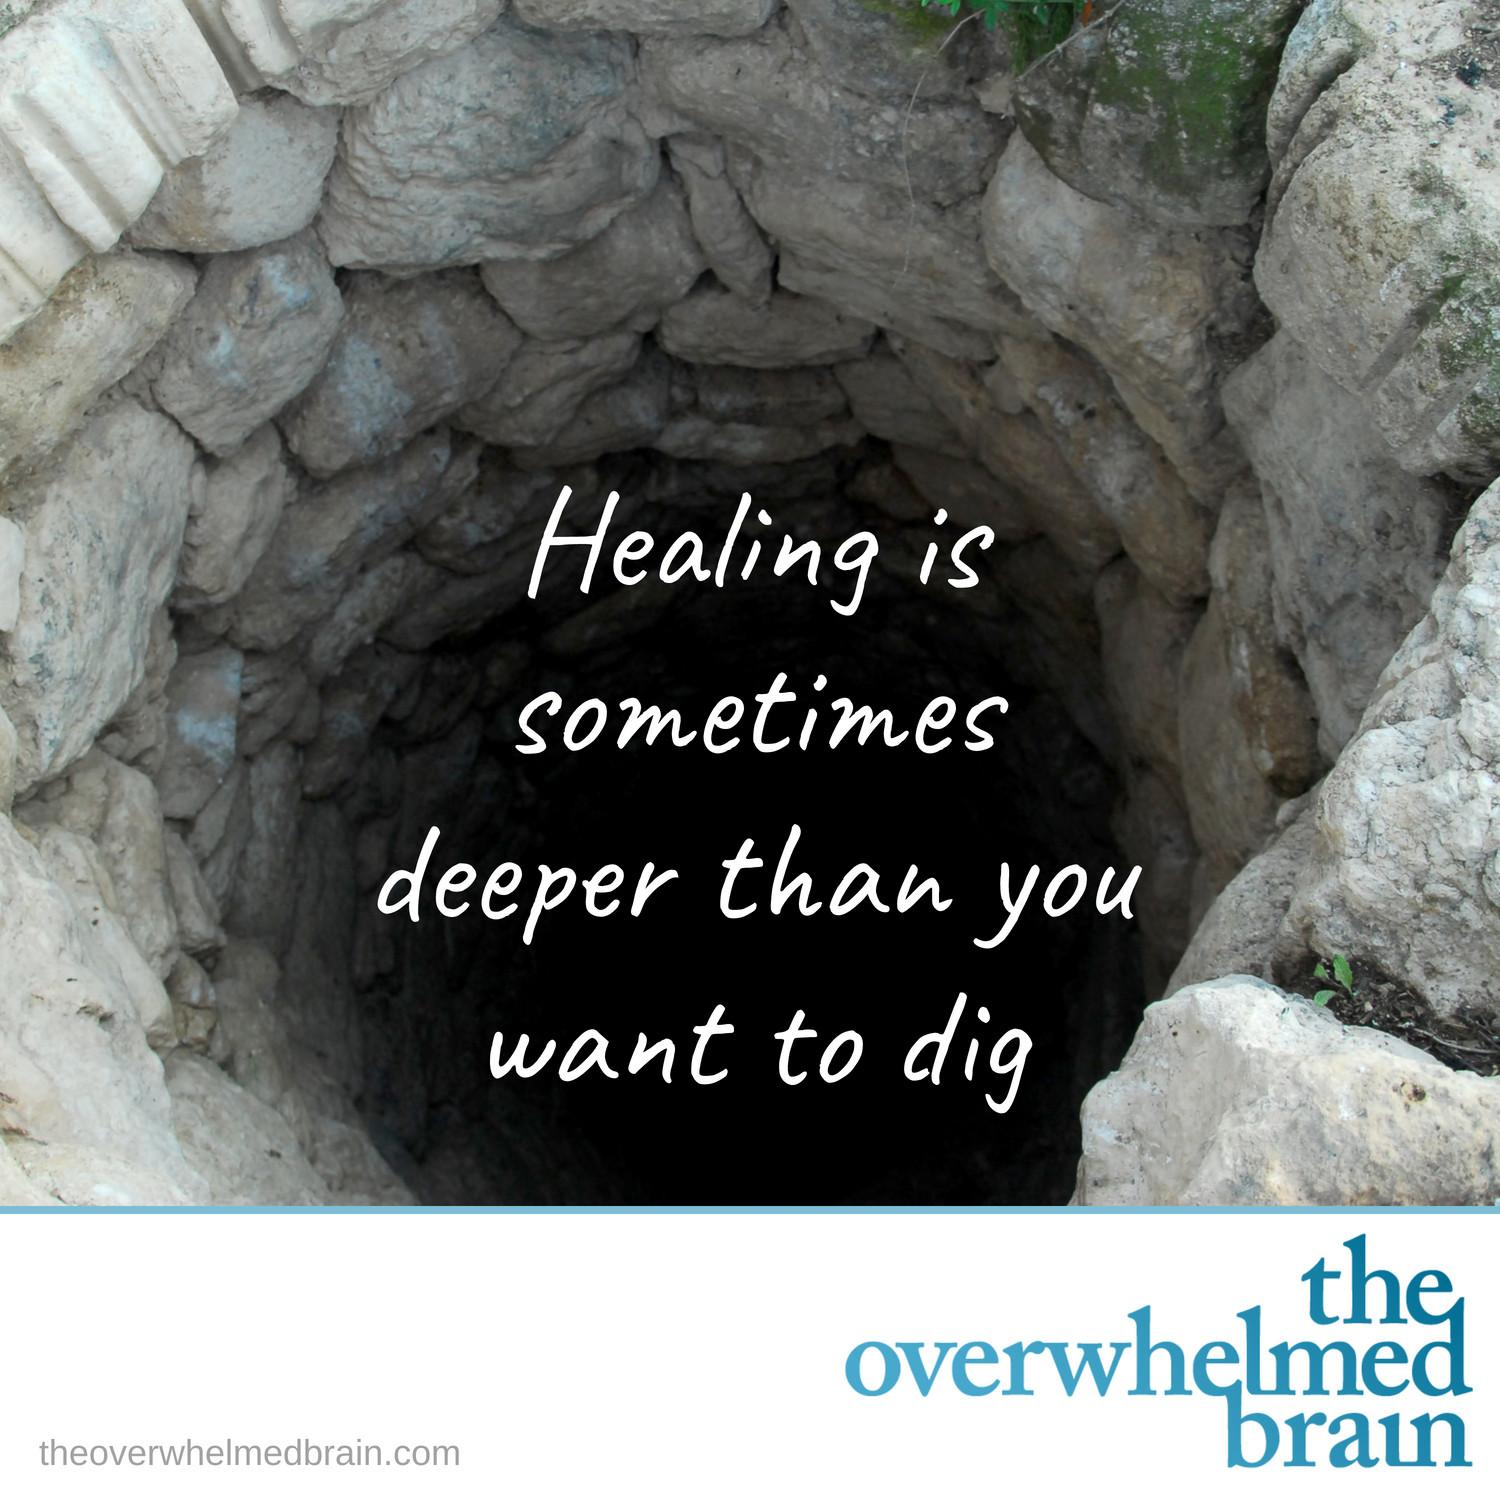 Just how deep do you have to dig to heal unresolved issues?